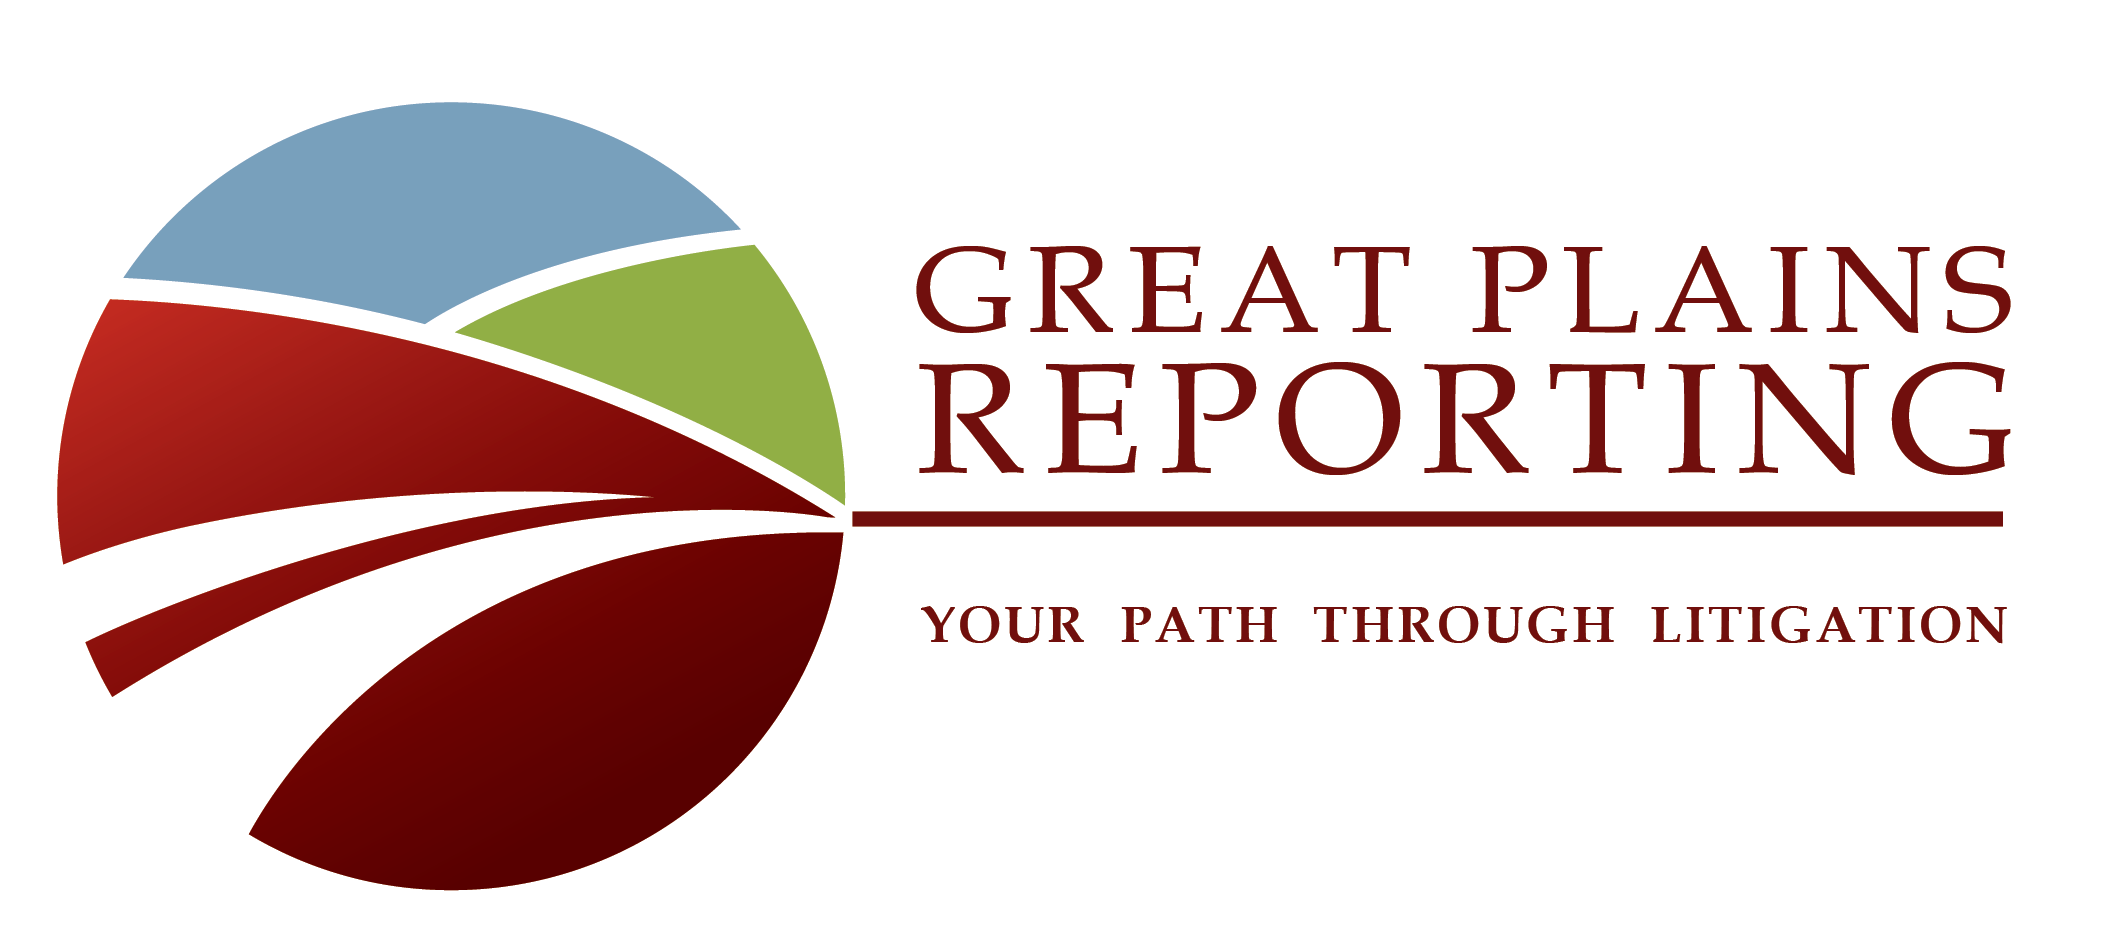 Great Plains Reporting logo